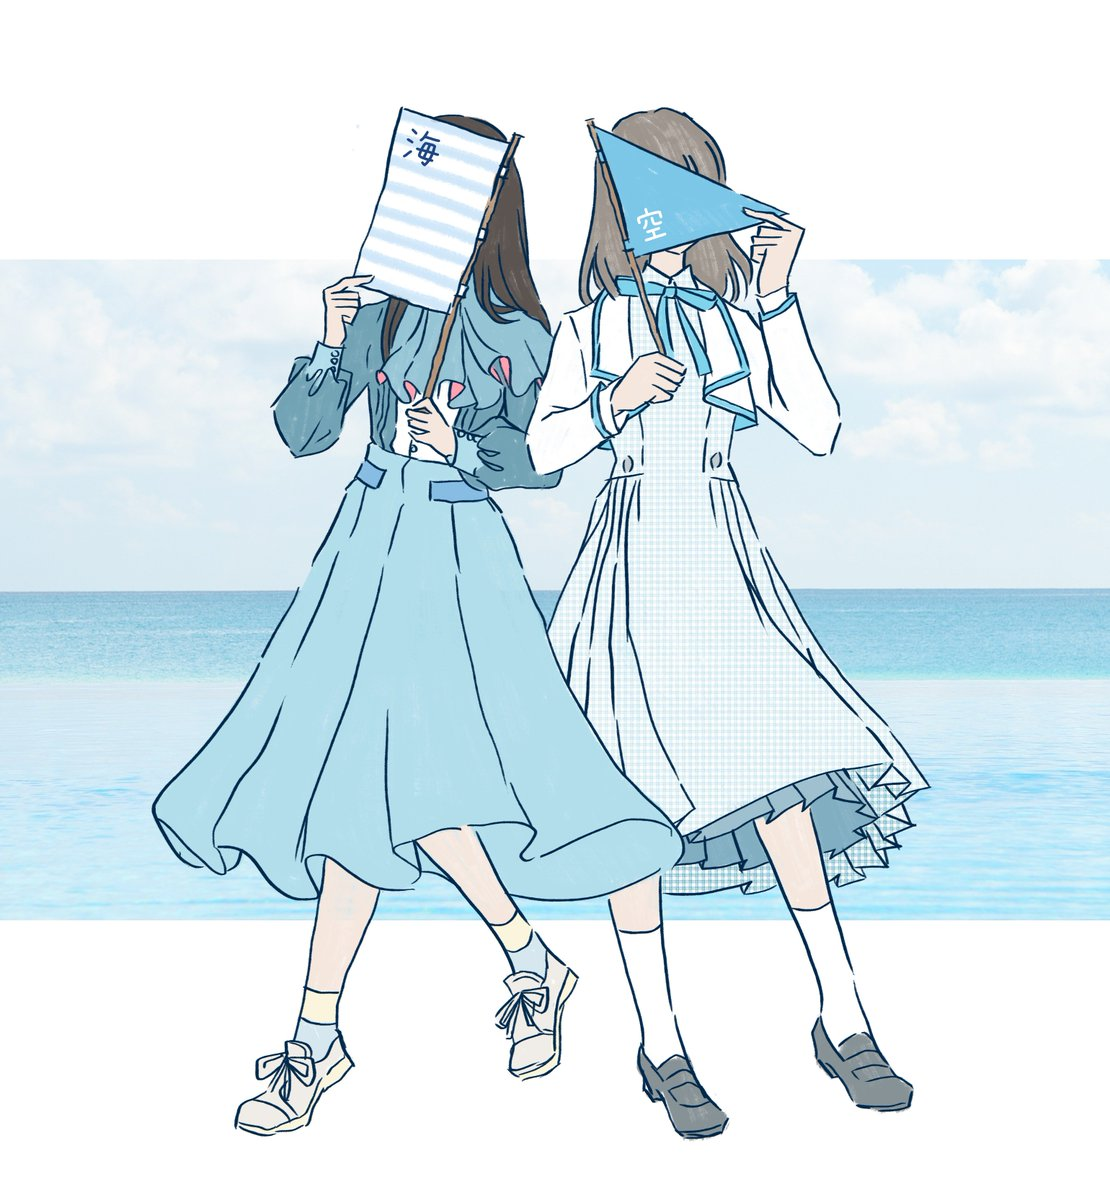 STU48  ×  日向坂46  I hope they cross path some time... . . . .. . imagine how cute their sea foam &amp; sky blue uniforms would look together.  <br>http://pic.twitter.com/bWdO4Fw1wS